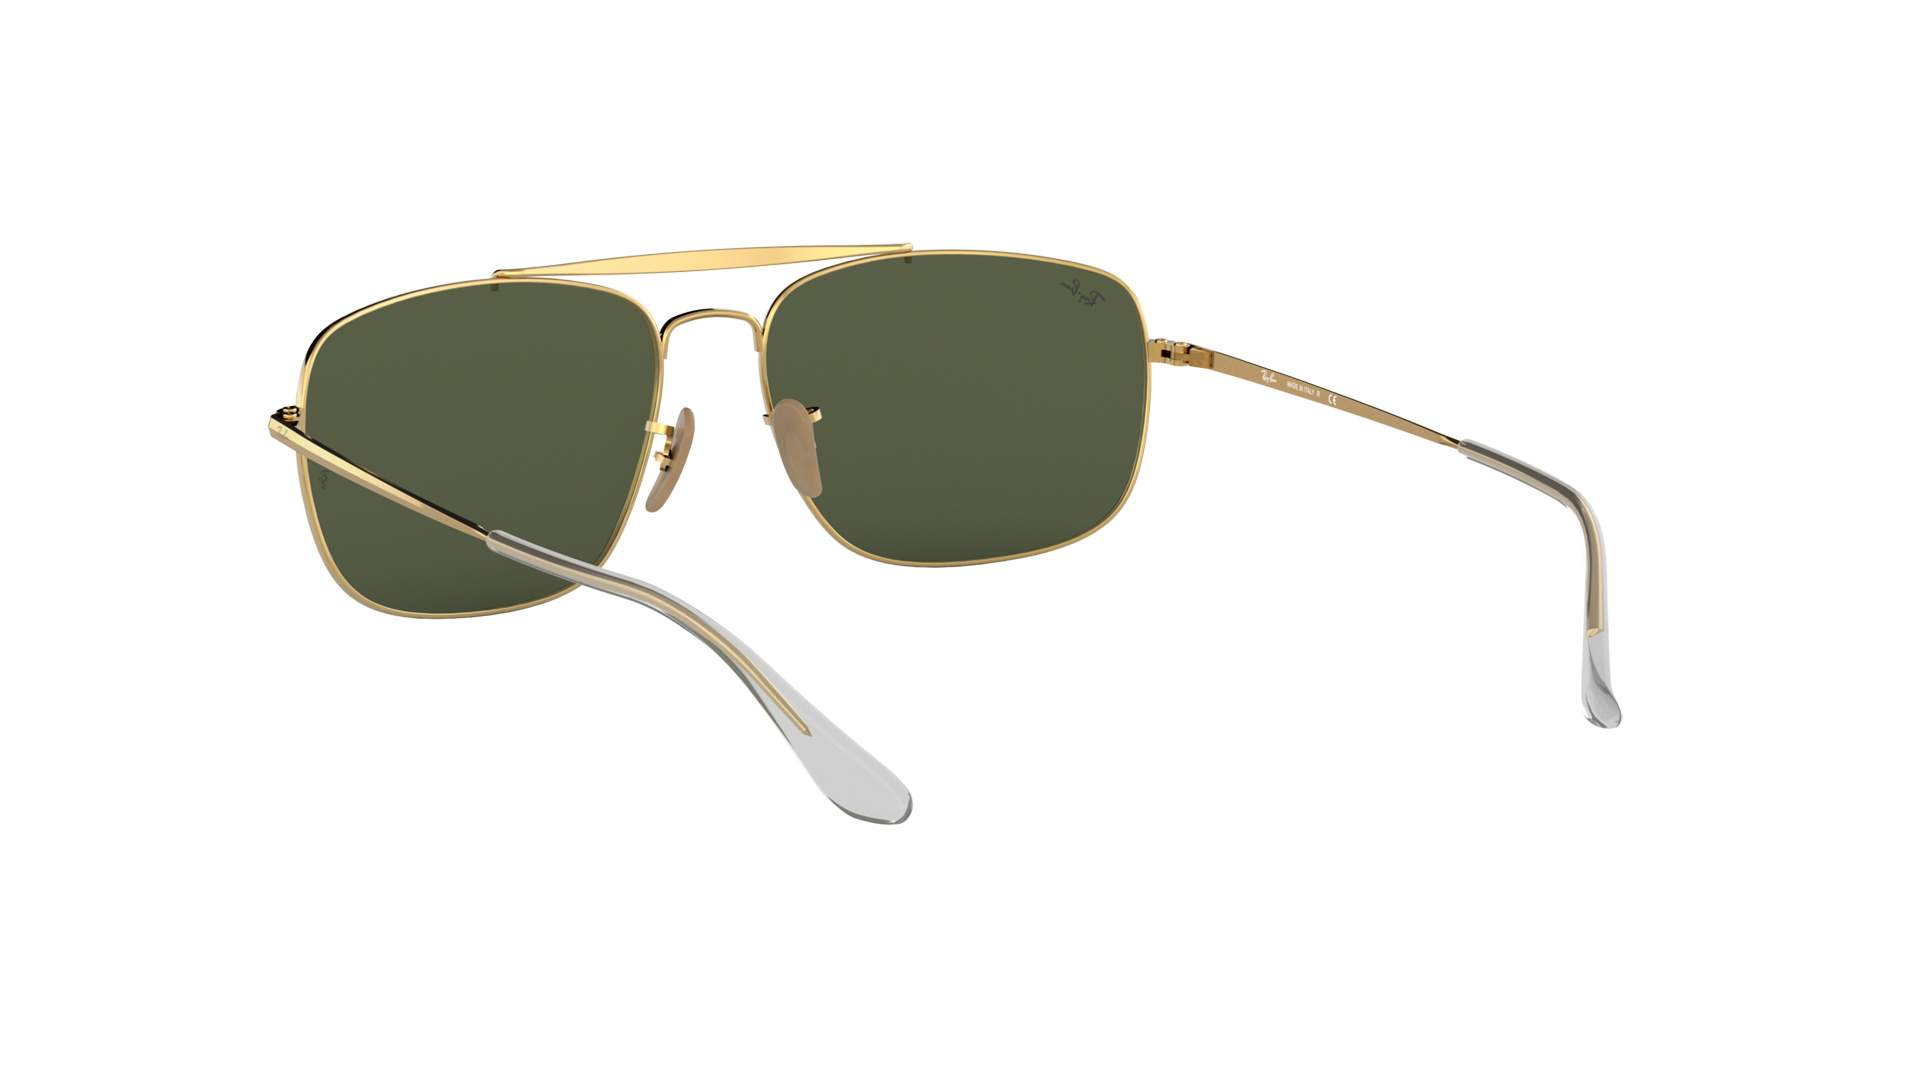 ddfb6cdd5d Sunglasses Ray-Ban The colonel Gold G-15 RB3560 001 61-17 Large